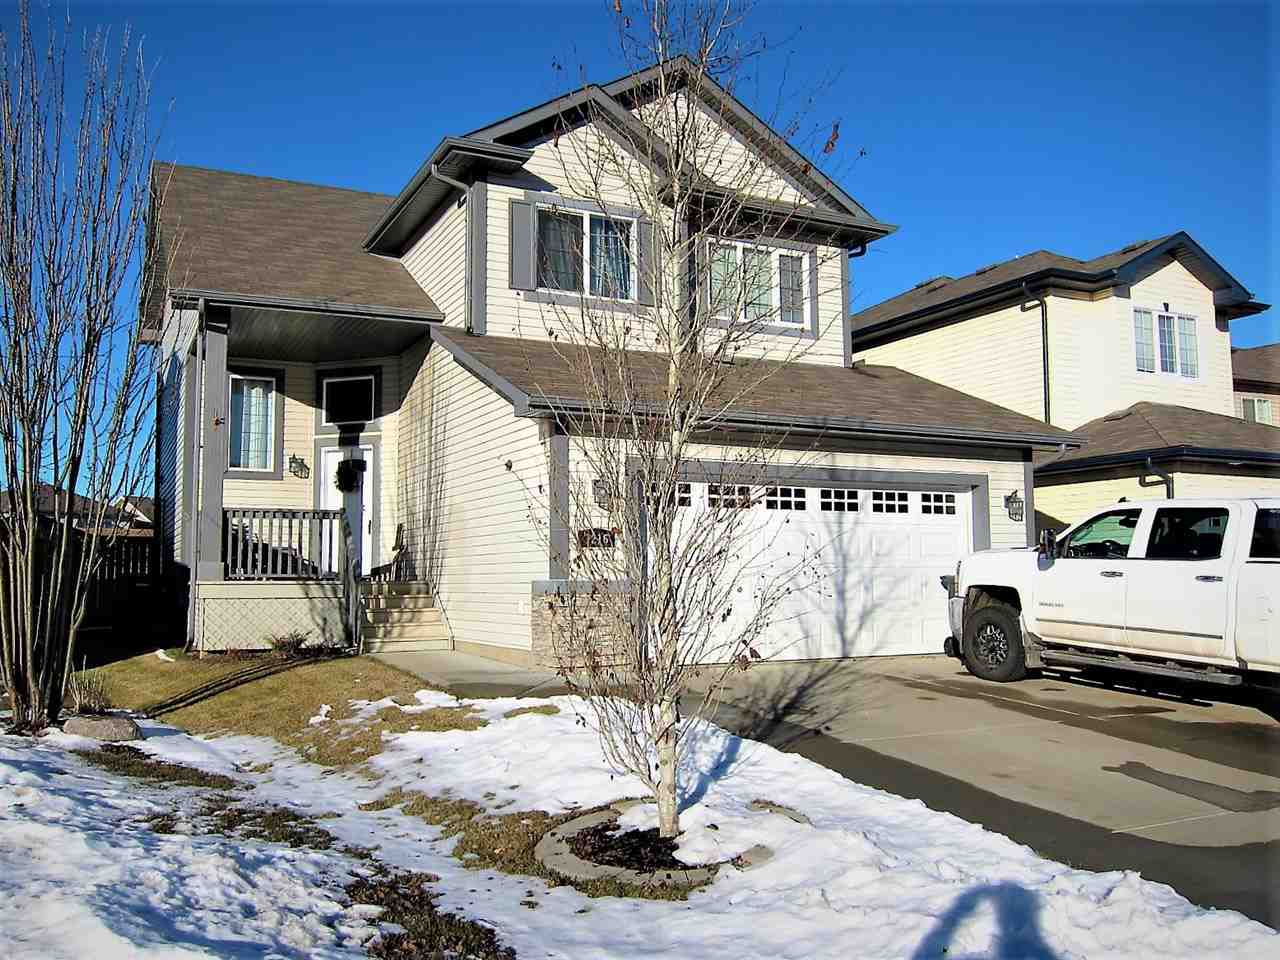 Main Photo: 1216 WESTERRA Crescent: Stony Plain House for sale : MLS®# E4137059